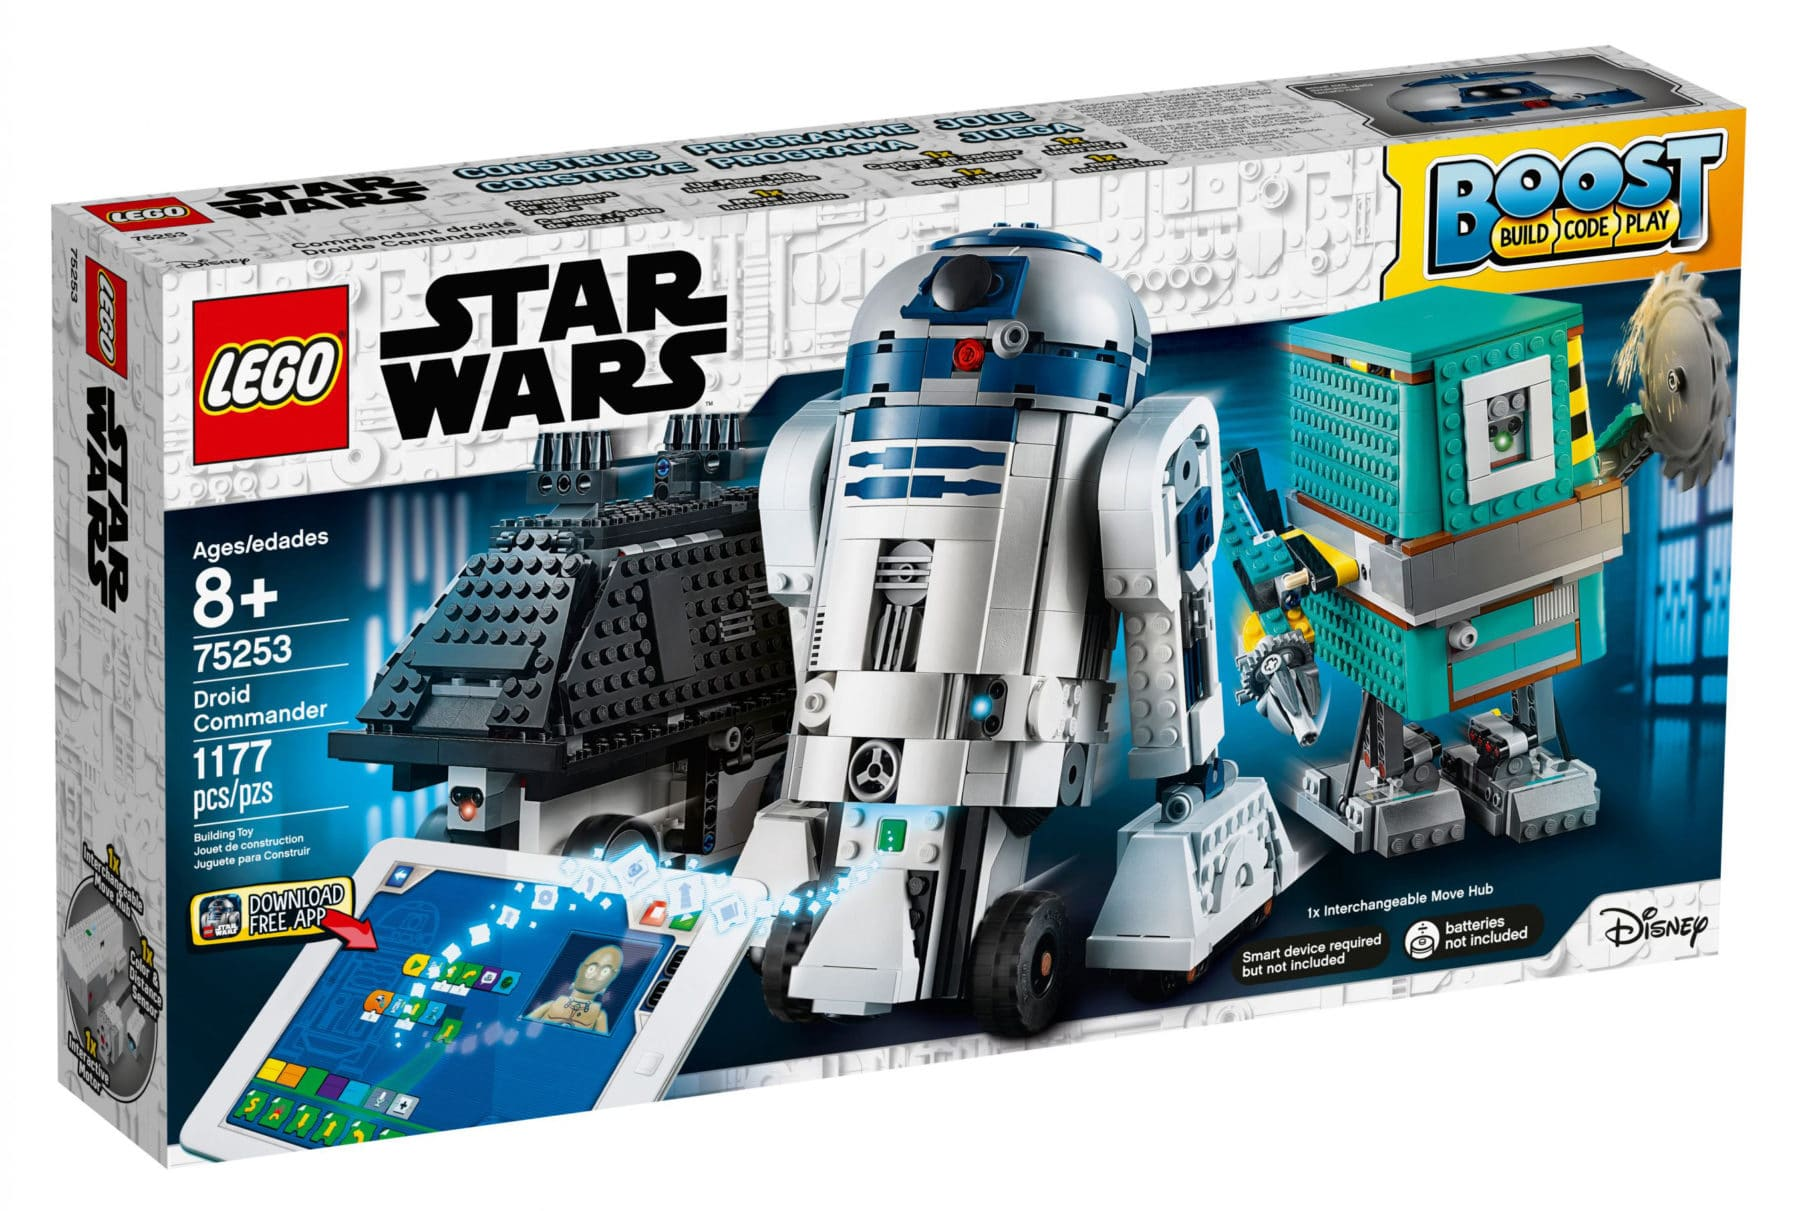 LEGO Star Wars 75253 Boost Droid Commander